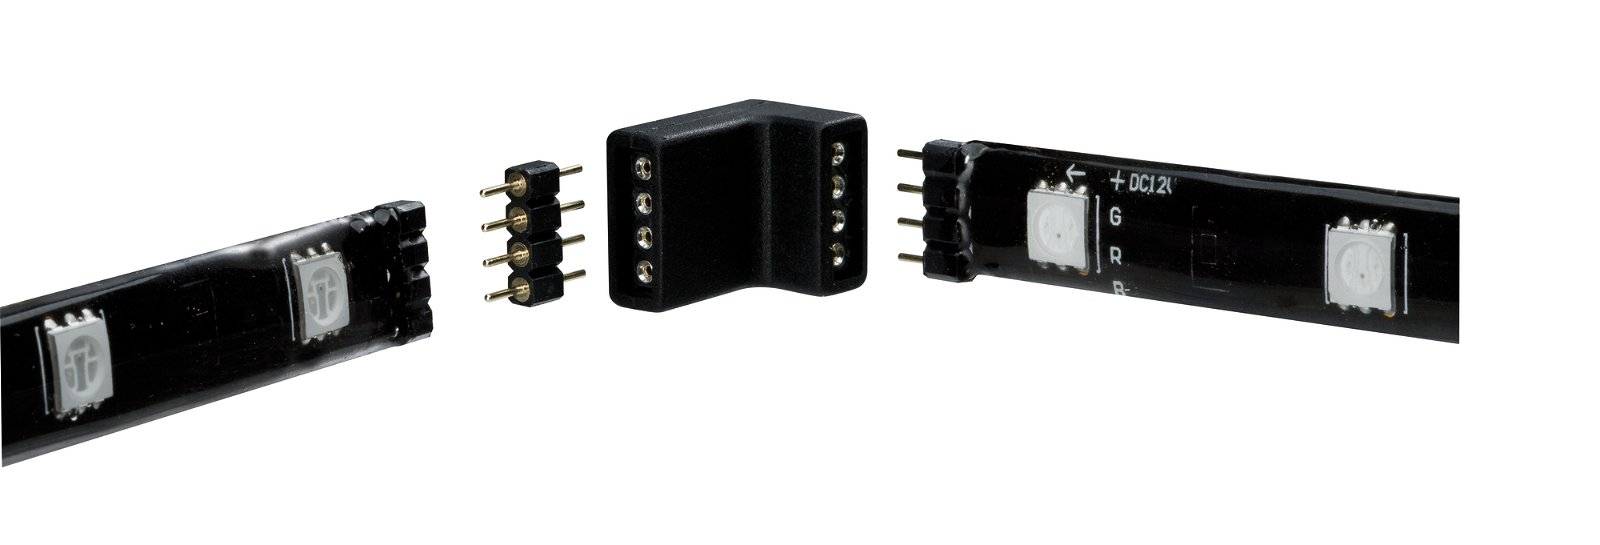 YourLED Connector Corner piece 17x13mm max. 60W White/Black